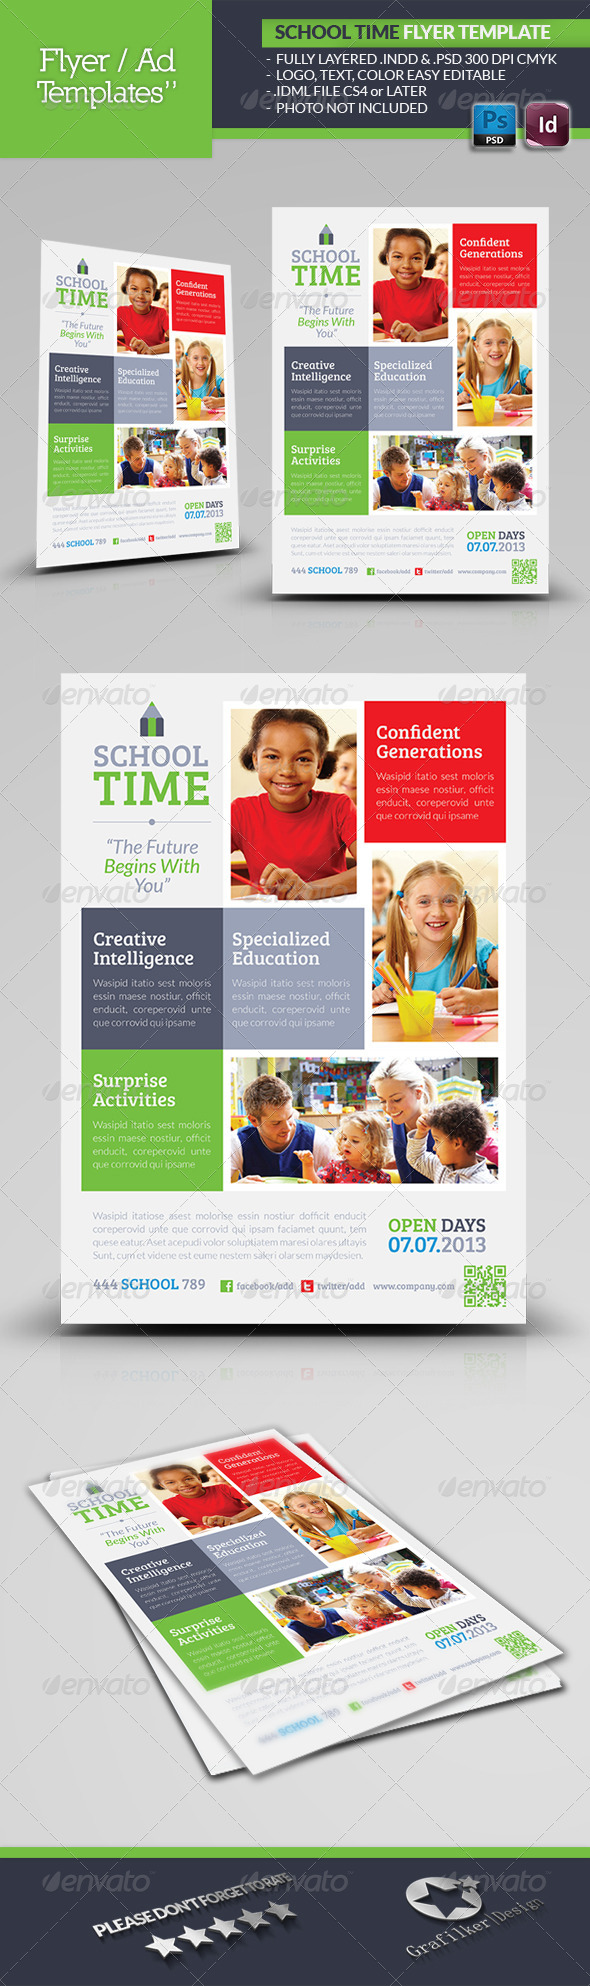 School Time Flyer Template - Print Ad Templates